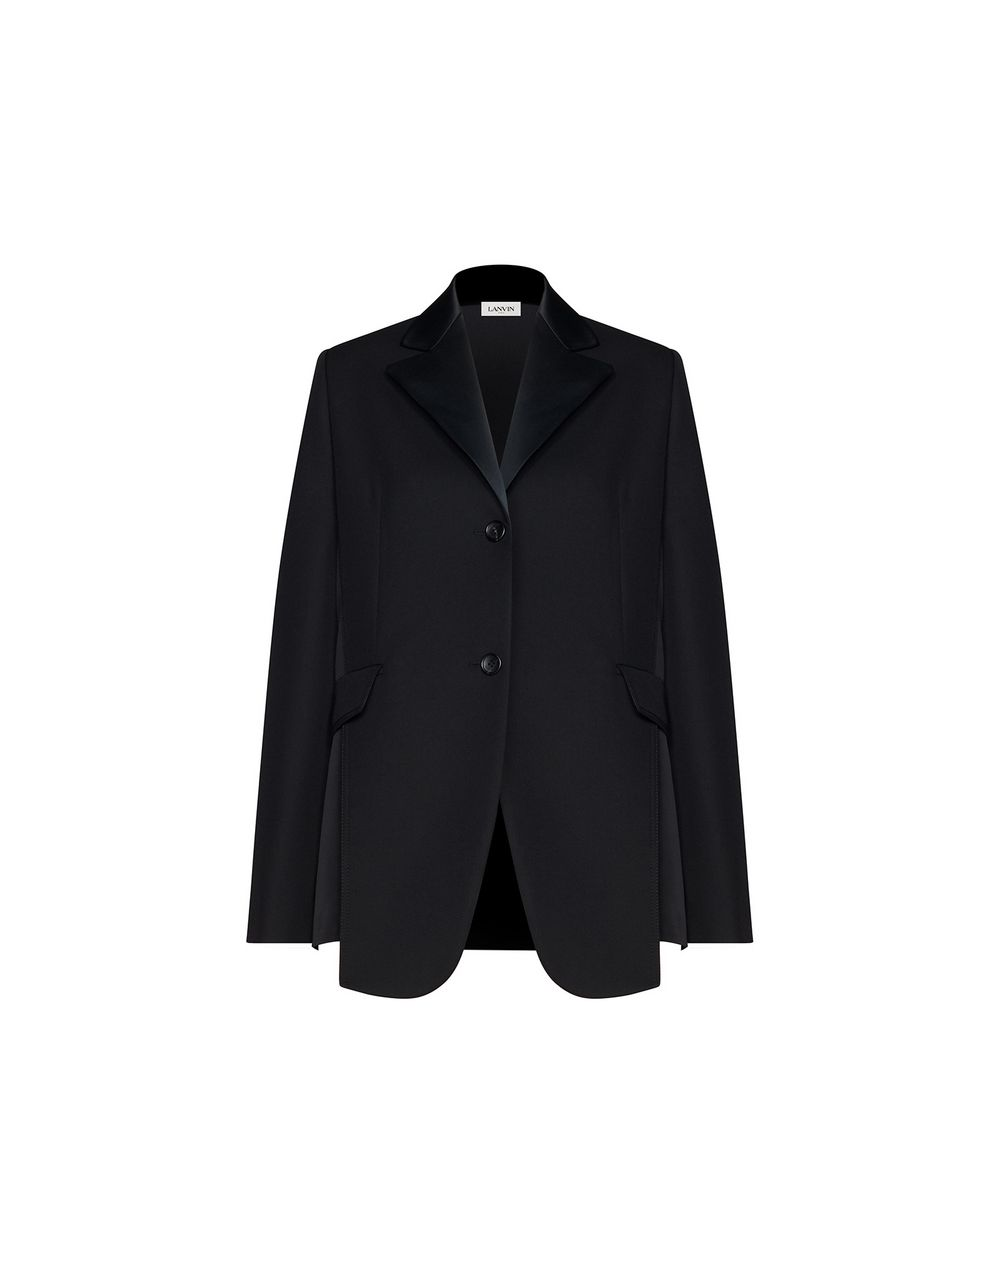 TWISTED SEAM TAILORED JACKET - Lanvin